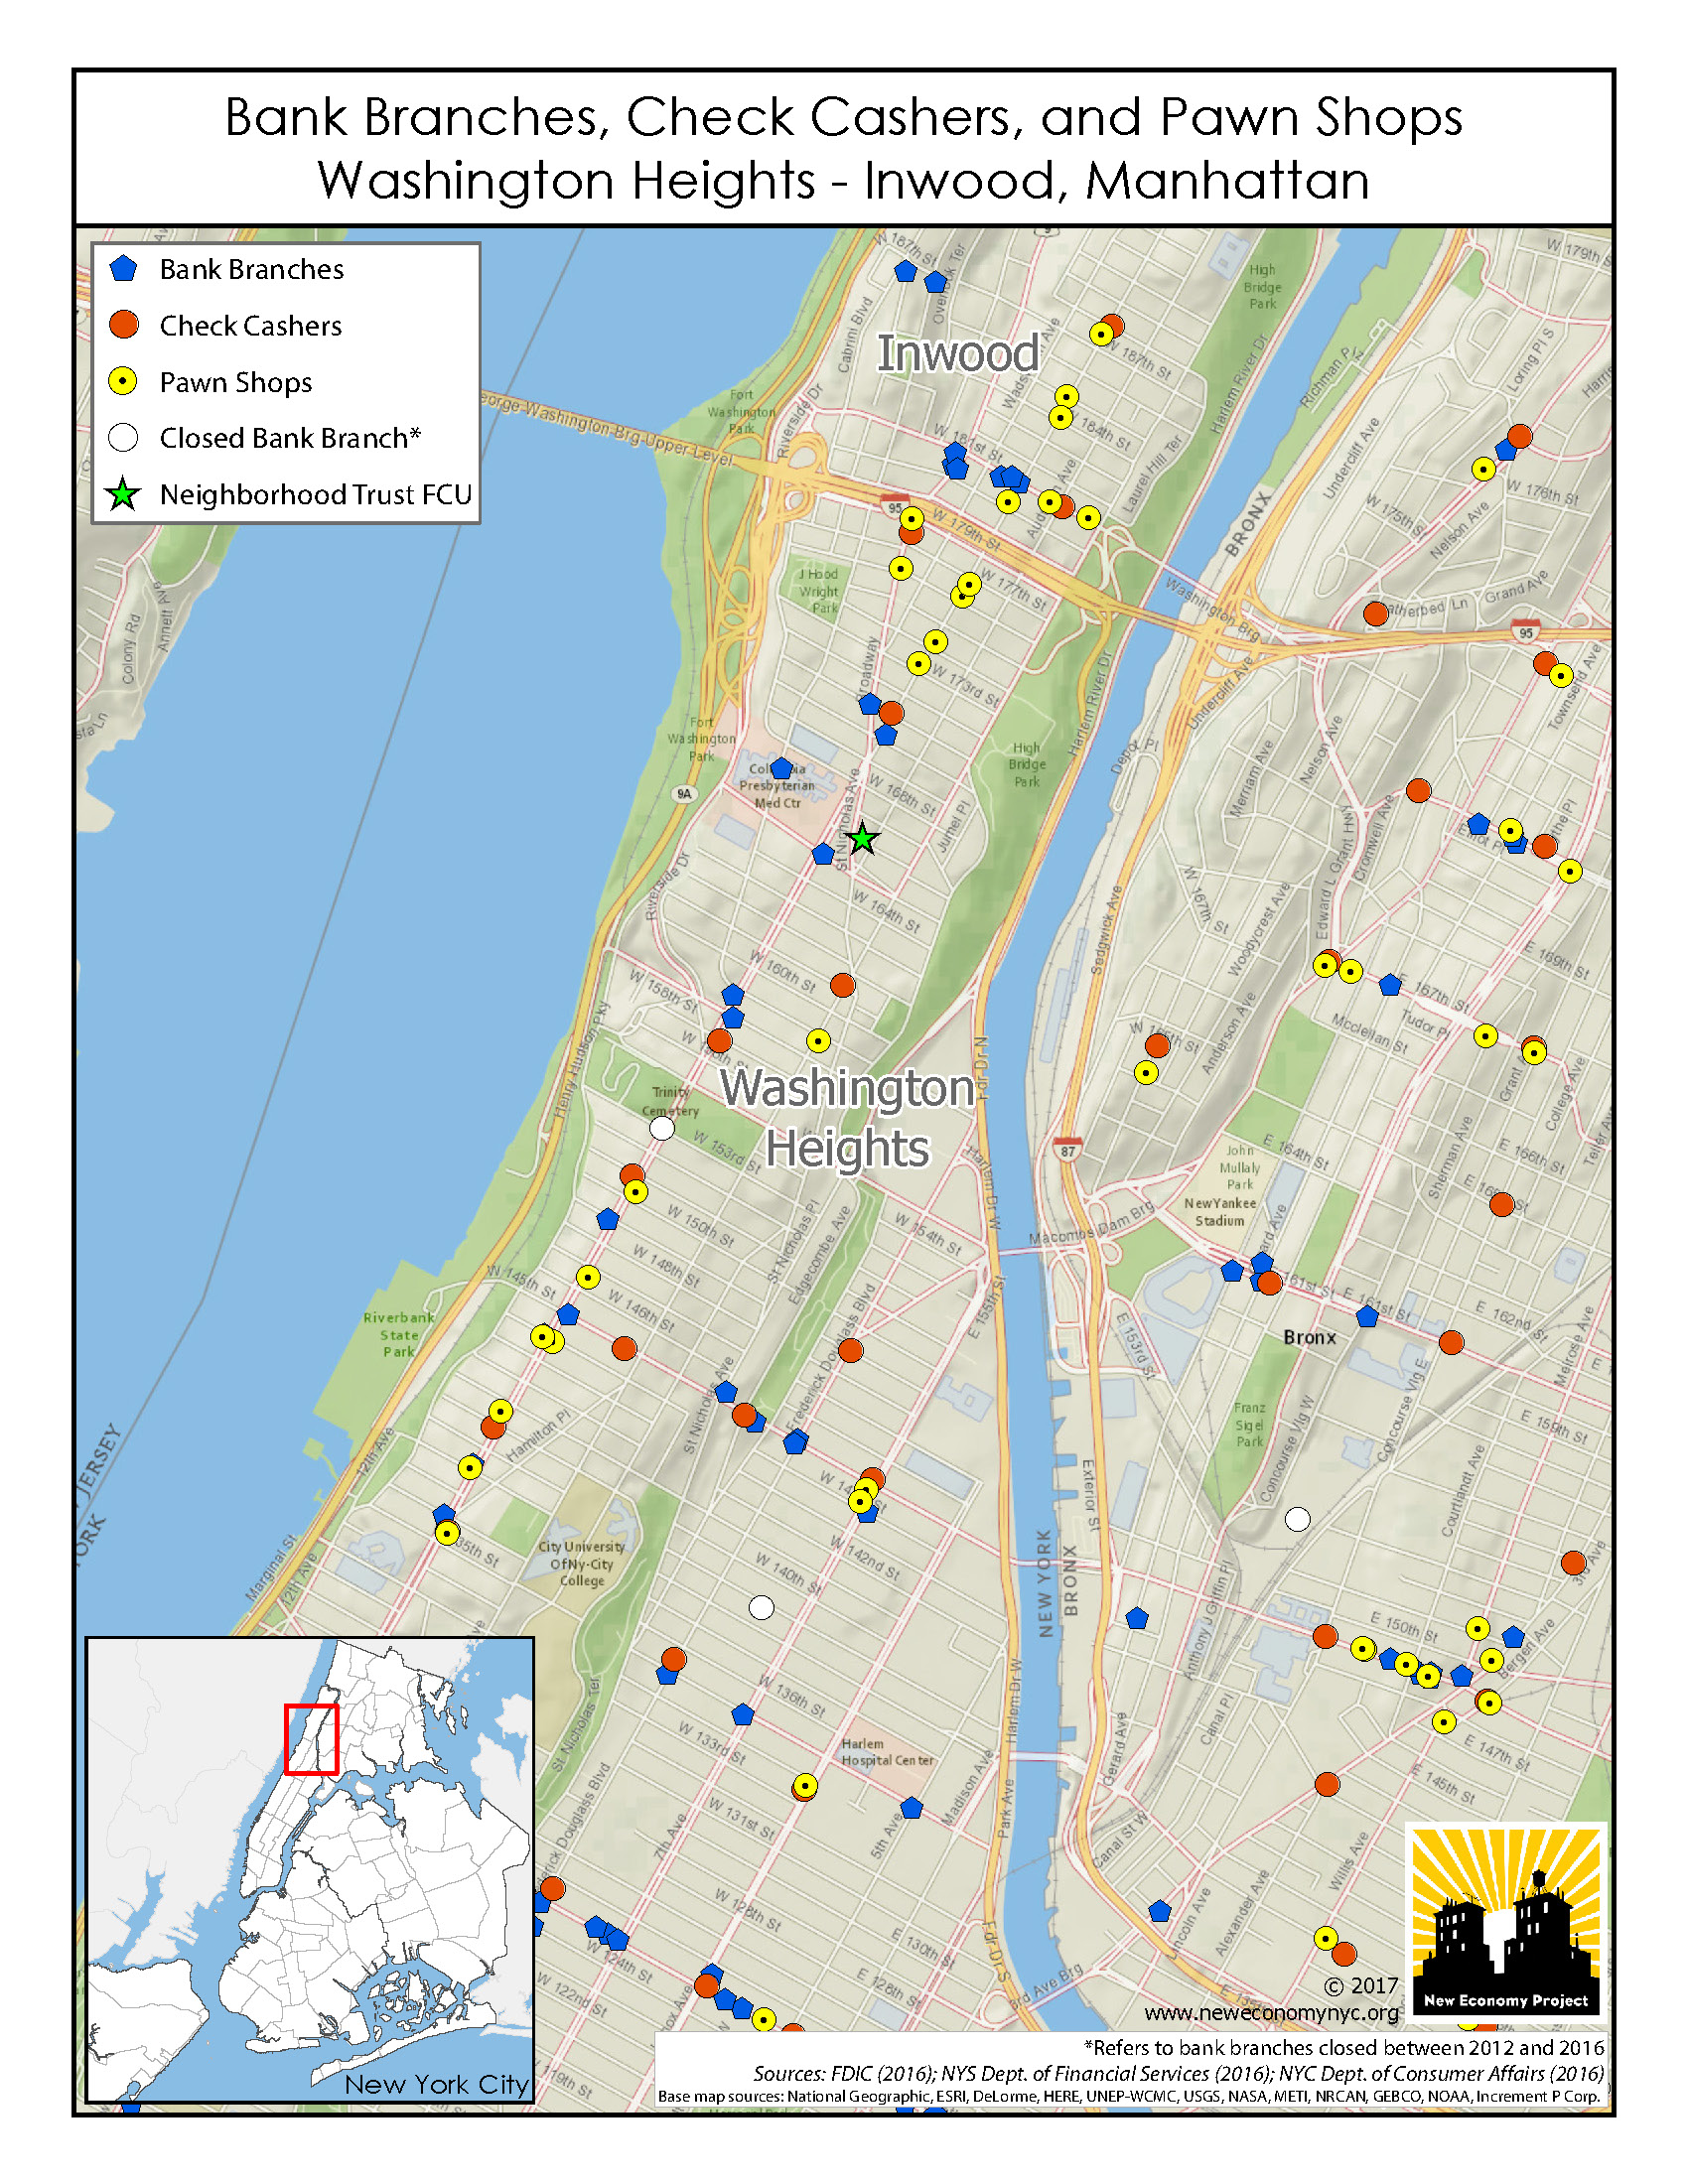 Maps Financial Services In NYC Neighborhoods New Economy Project - New york neighborhood map